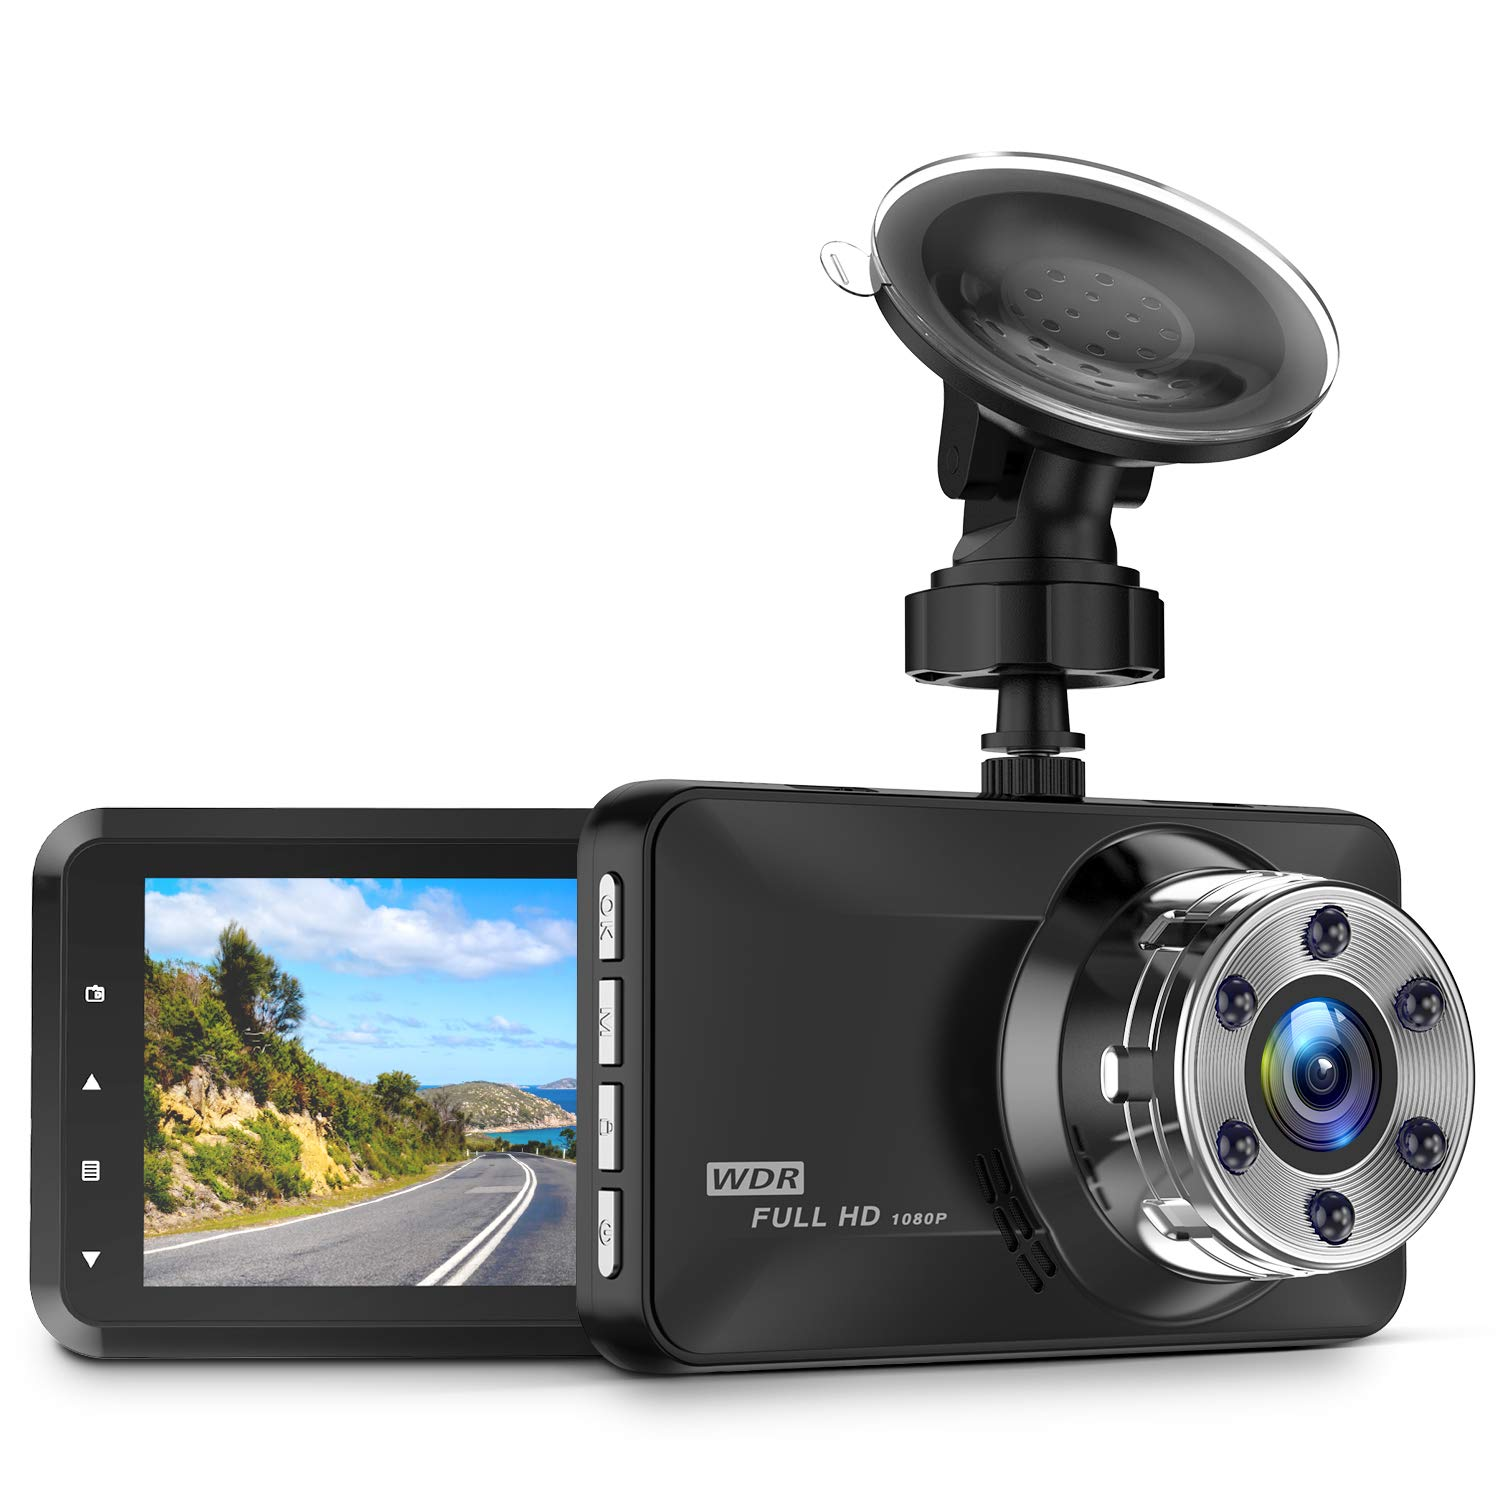 Dash Cam, Amuoc 1080P FHD DVR Car Driving Recorder 3 Inch LCD Screen 170° Wide Angle, G-Sensor, WDR, Parking Monitor, Loop Recording, Motion Detection by Amuoc